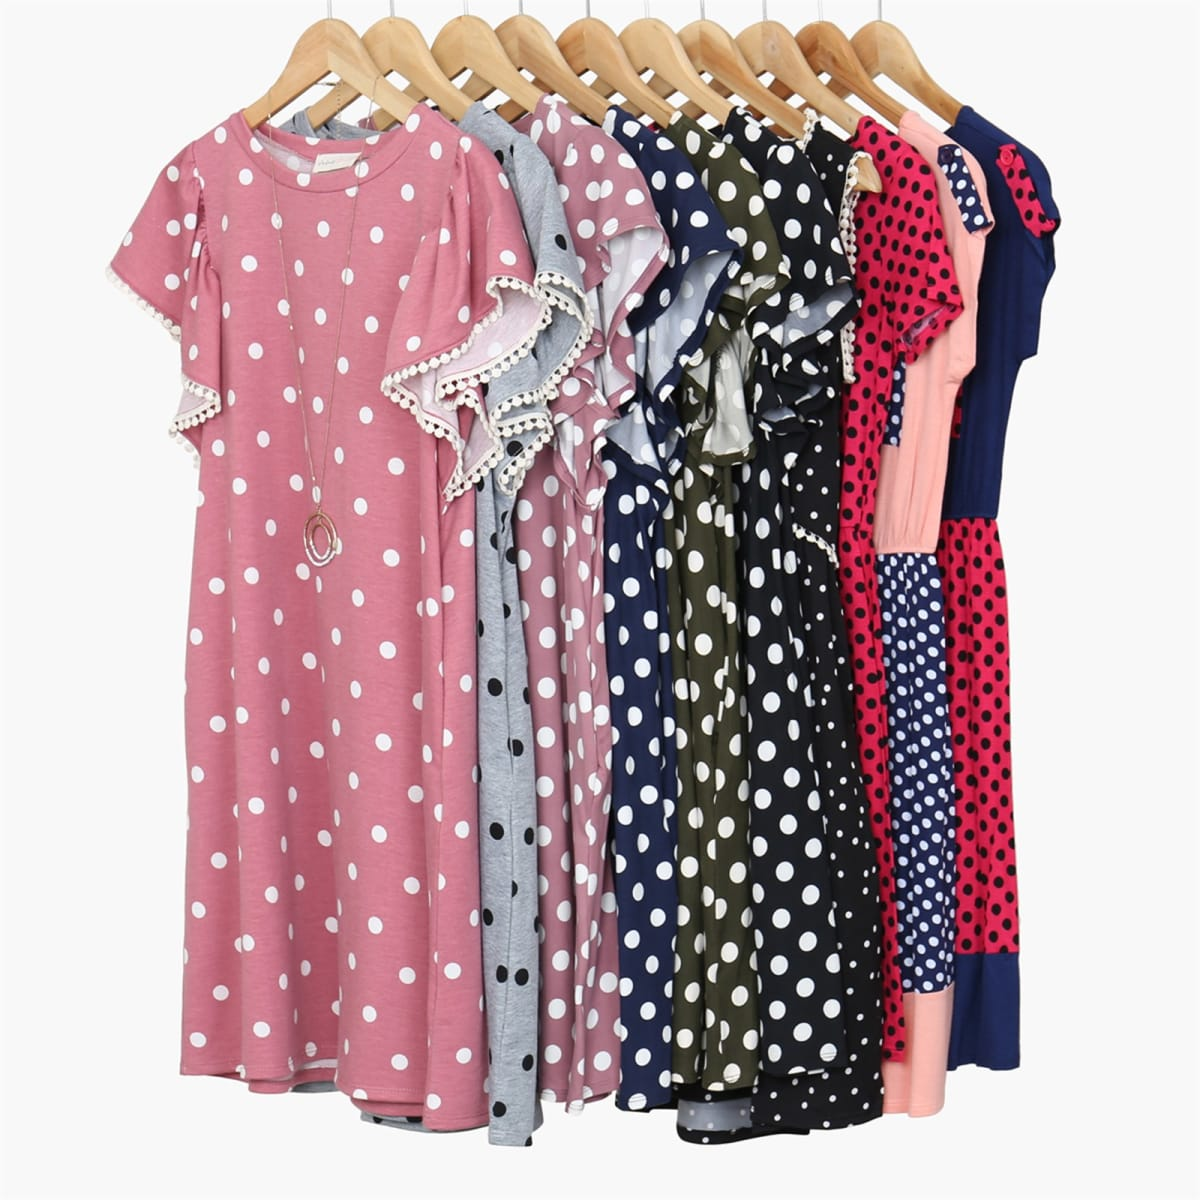 .99 Dresses at Jane with Free Shipping!